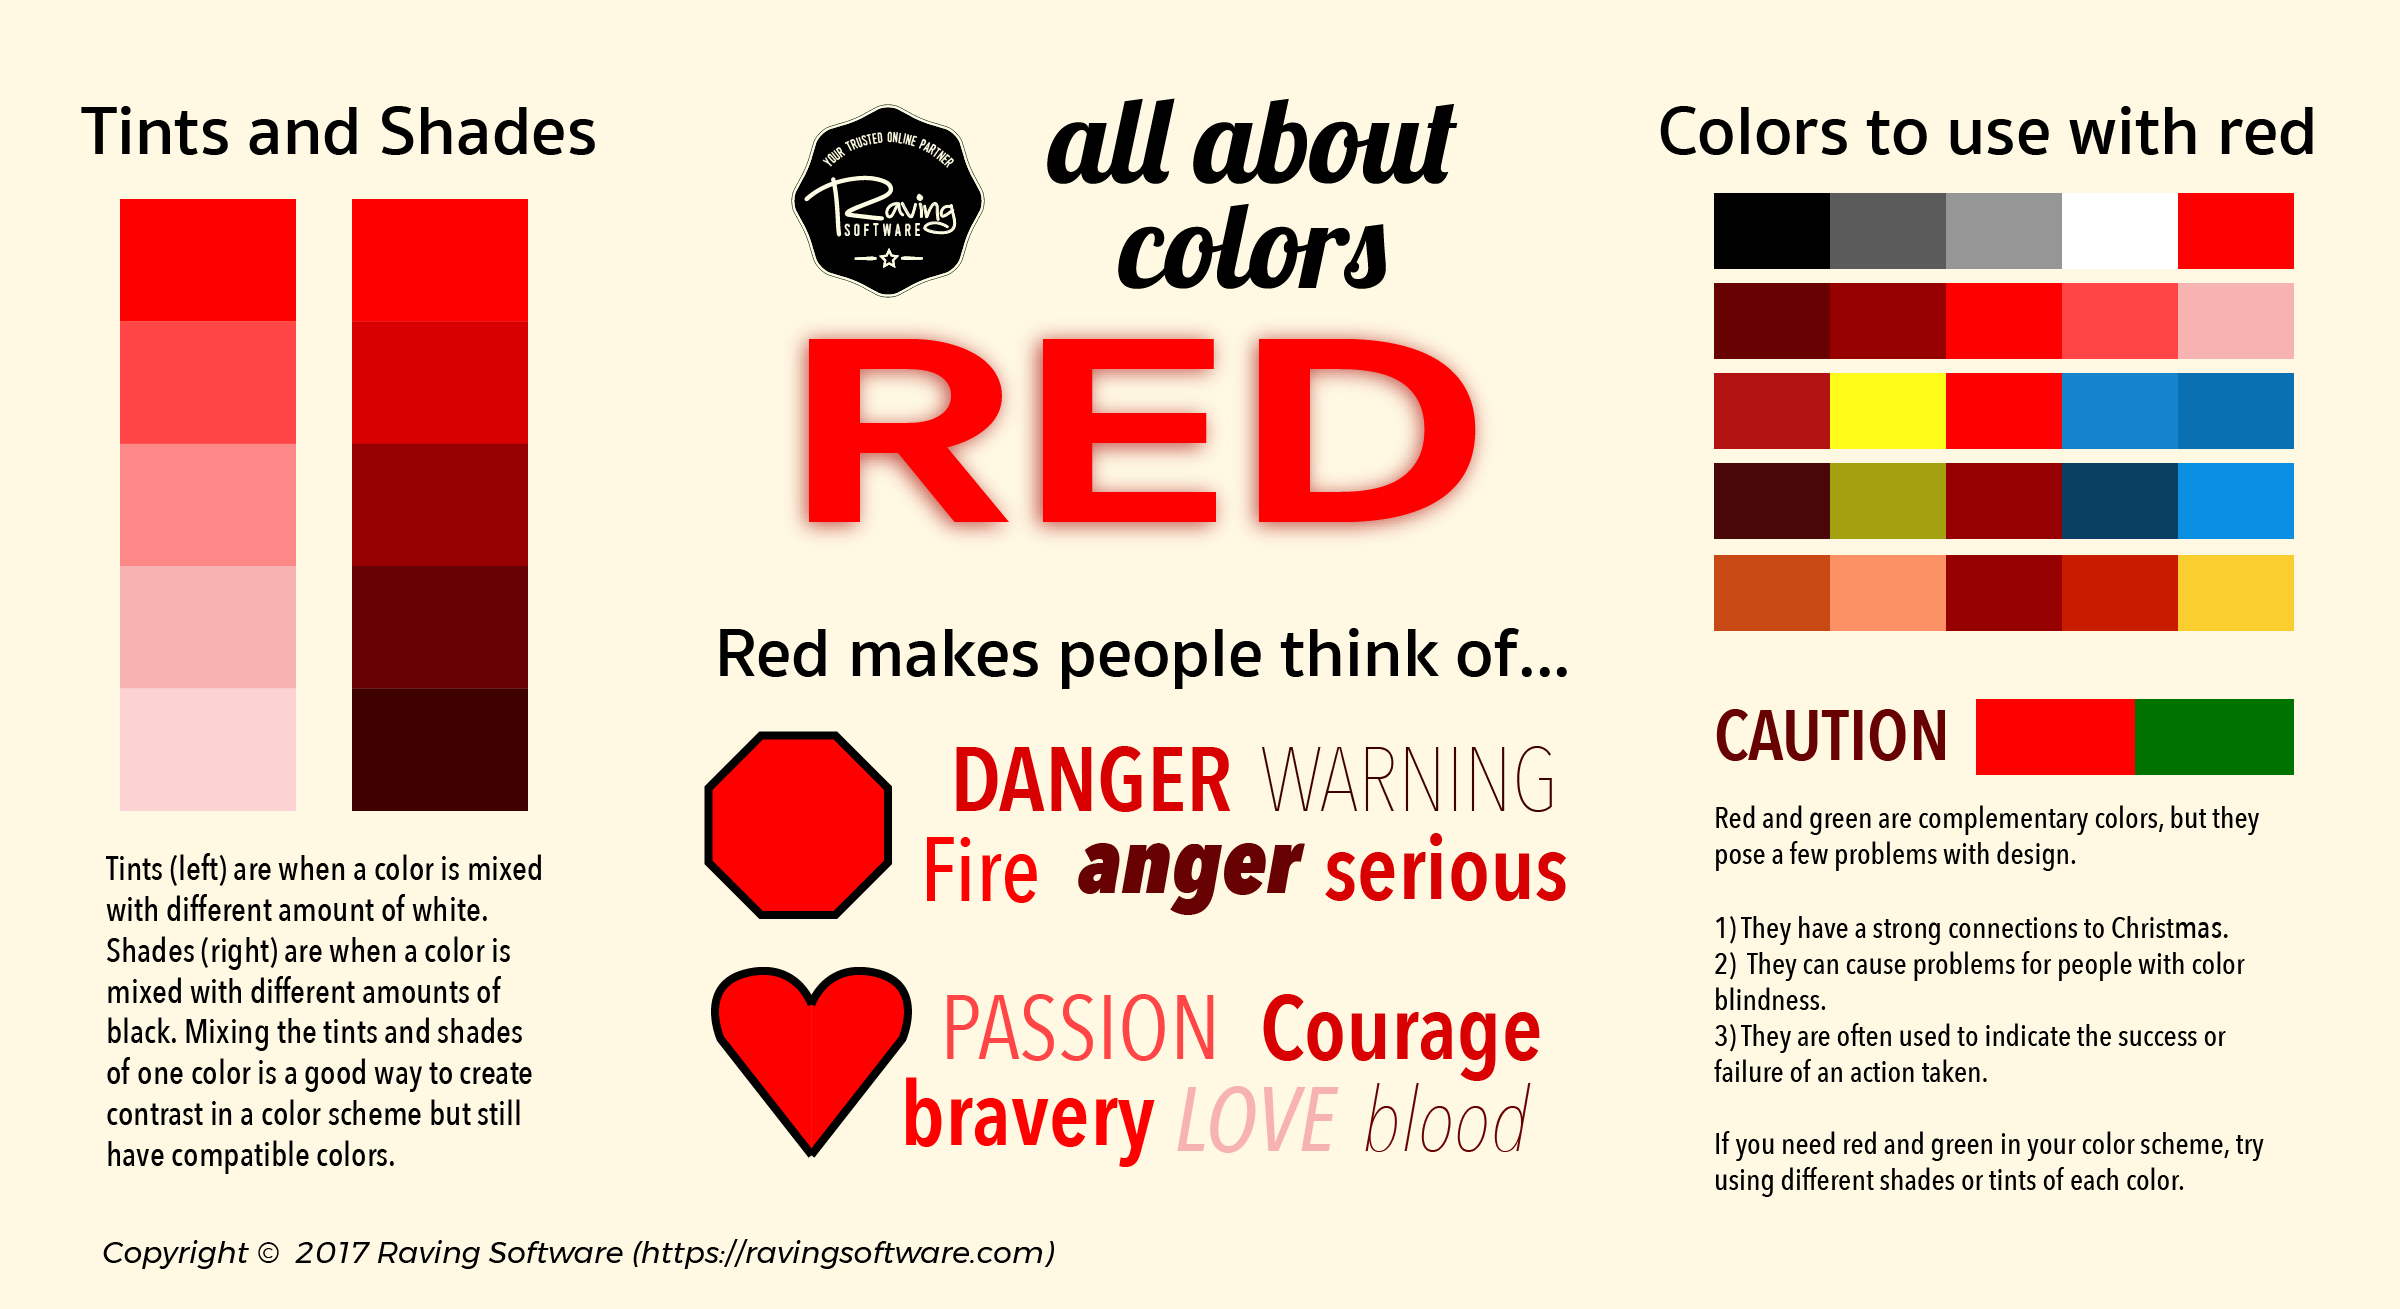 How to include red in your color scheme